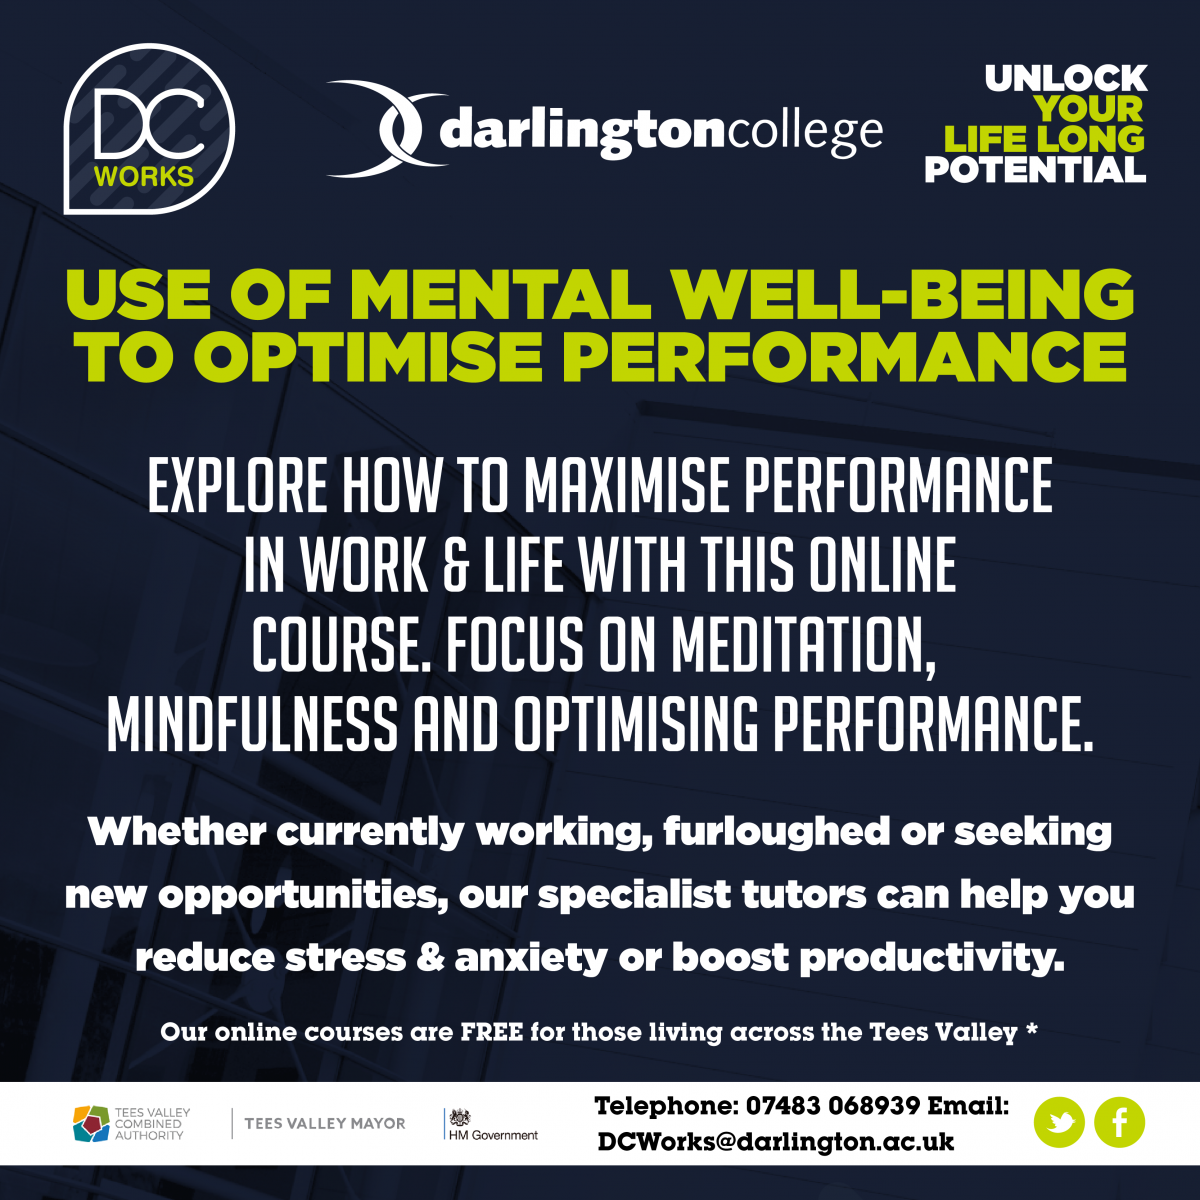 Use-of-Mental-Well-Being-05